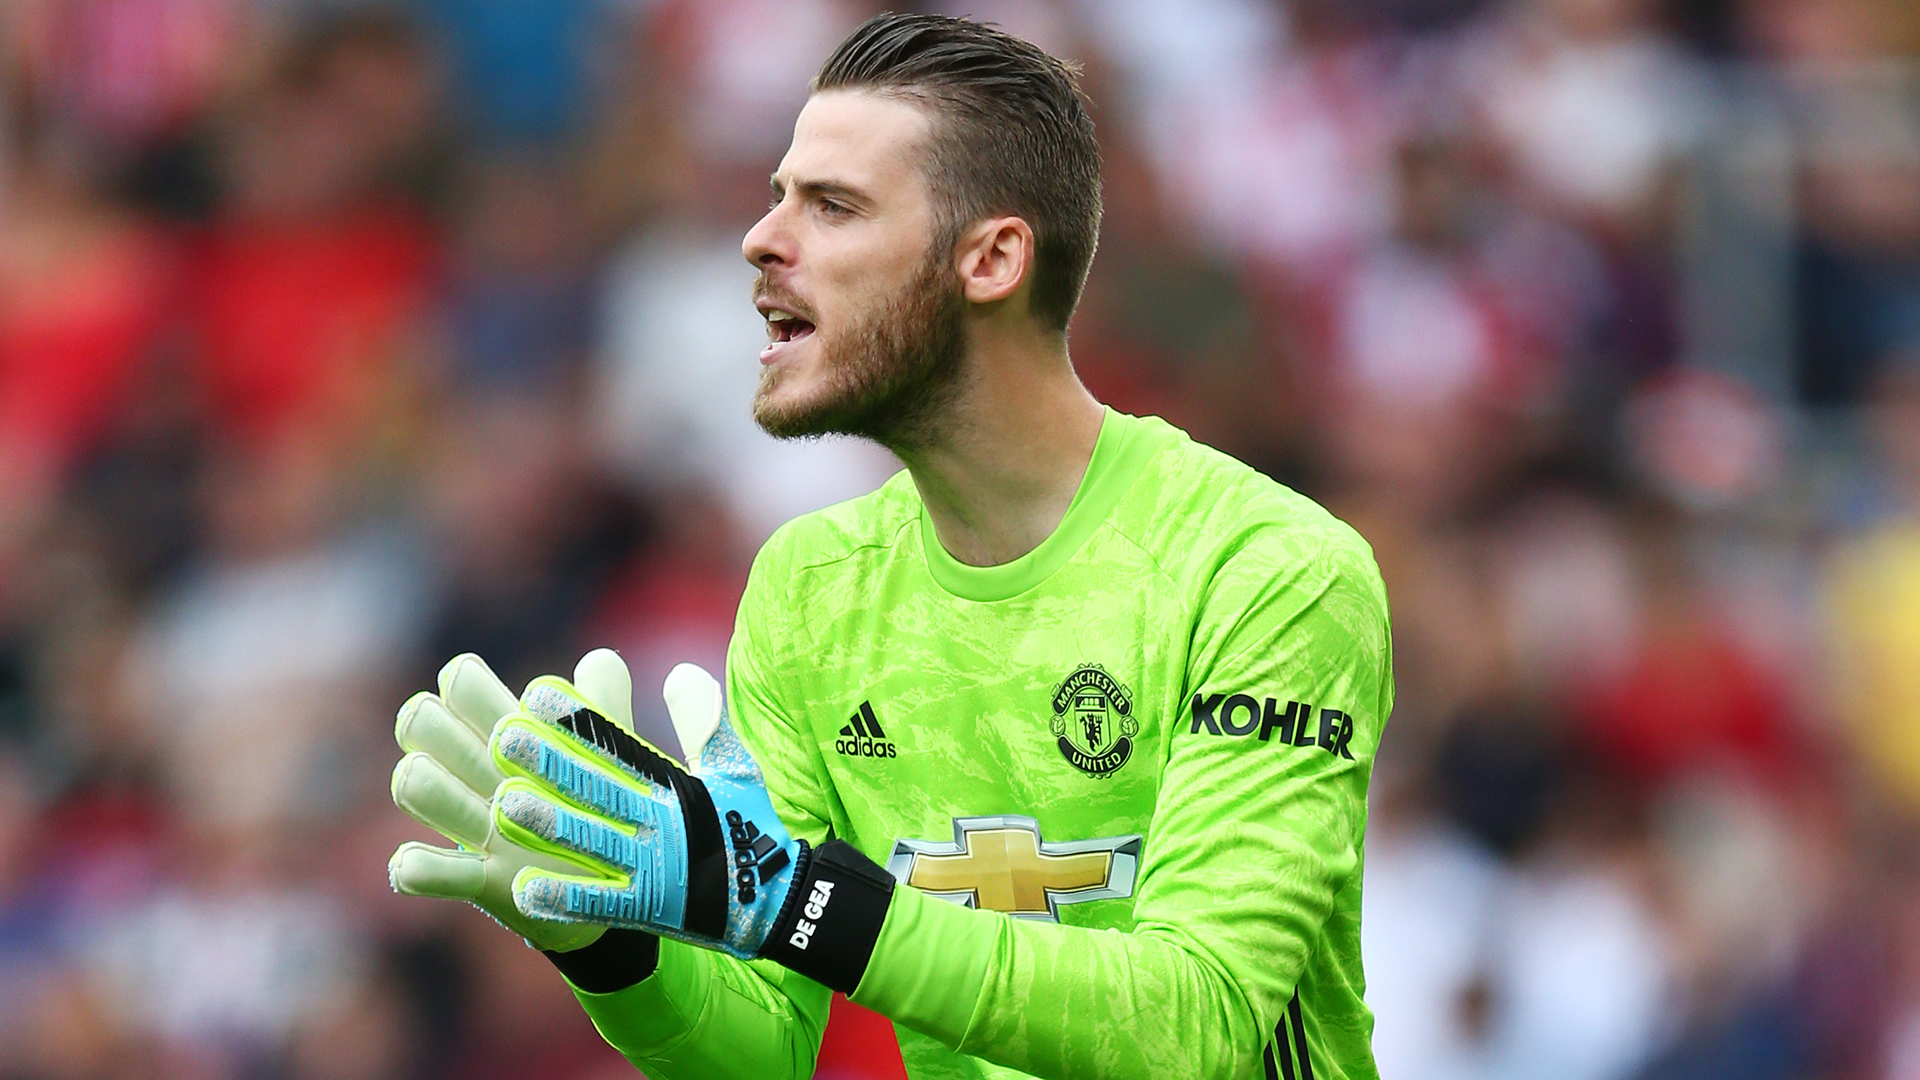 De Gea contract saga could have hurt Manchester United - Schmeichel